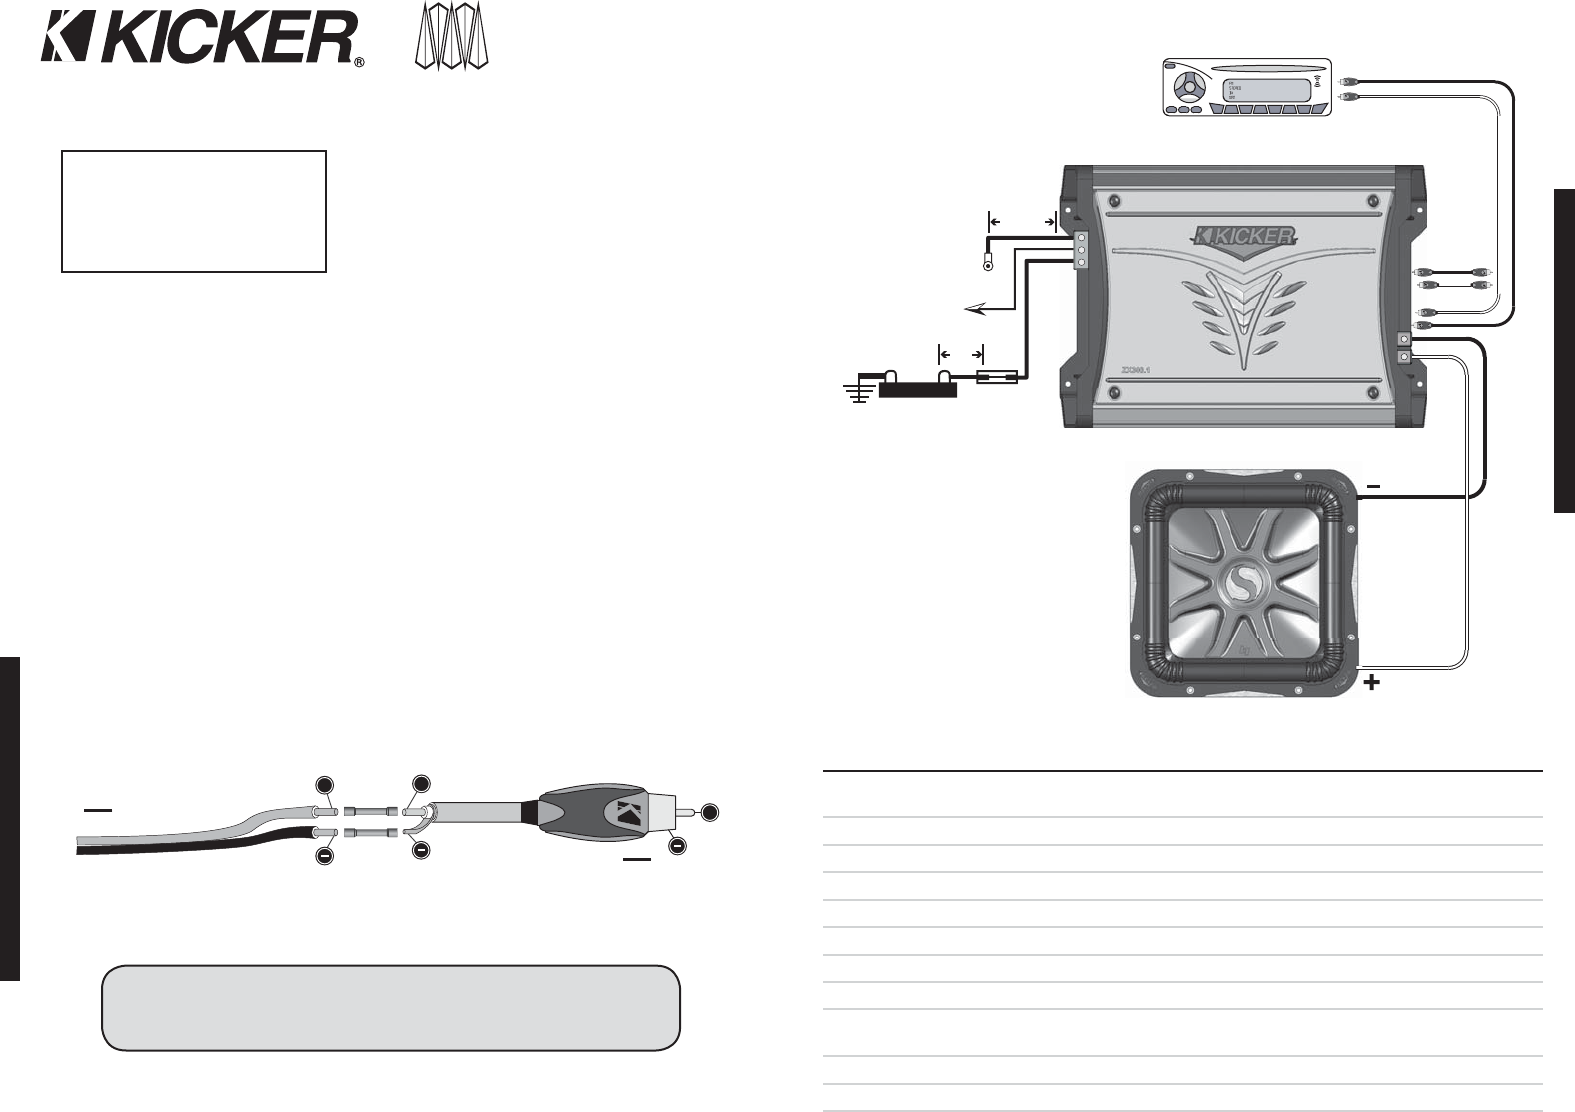 770284a1 acea 49dd a2d5 008464a26d2e bg2 page 2 of kicker speaker zx400 1 user guide manualsonline com Kicker Zx400.1 Manual at alyssarenee.co